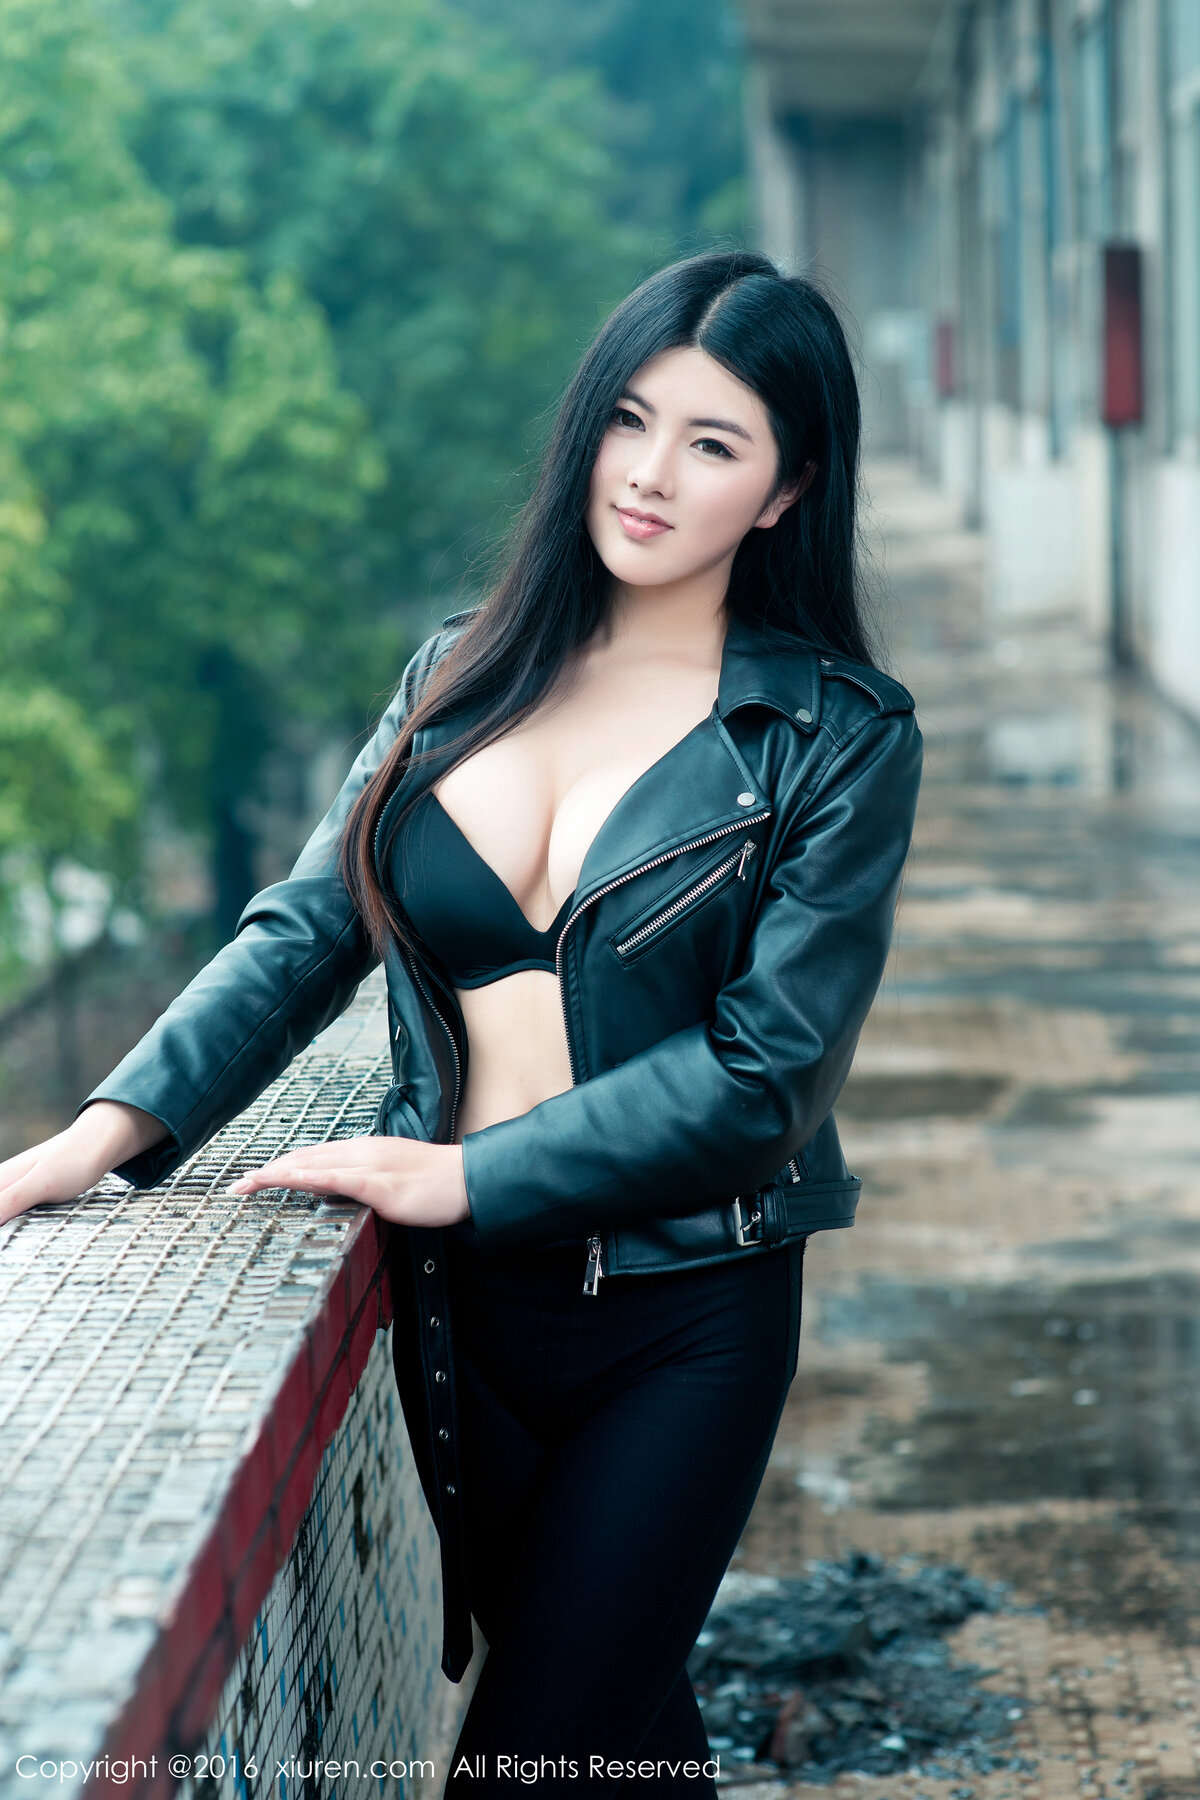 images-of-hot-chinese-women